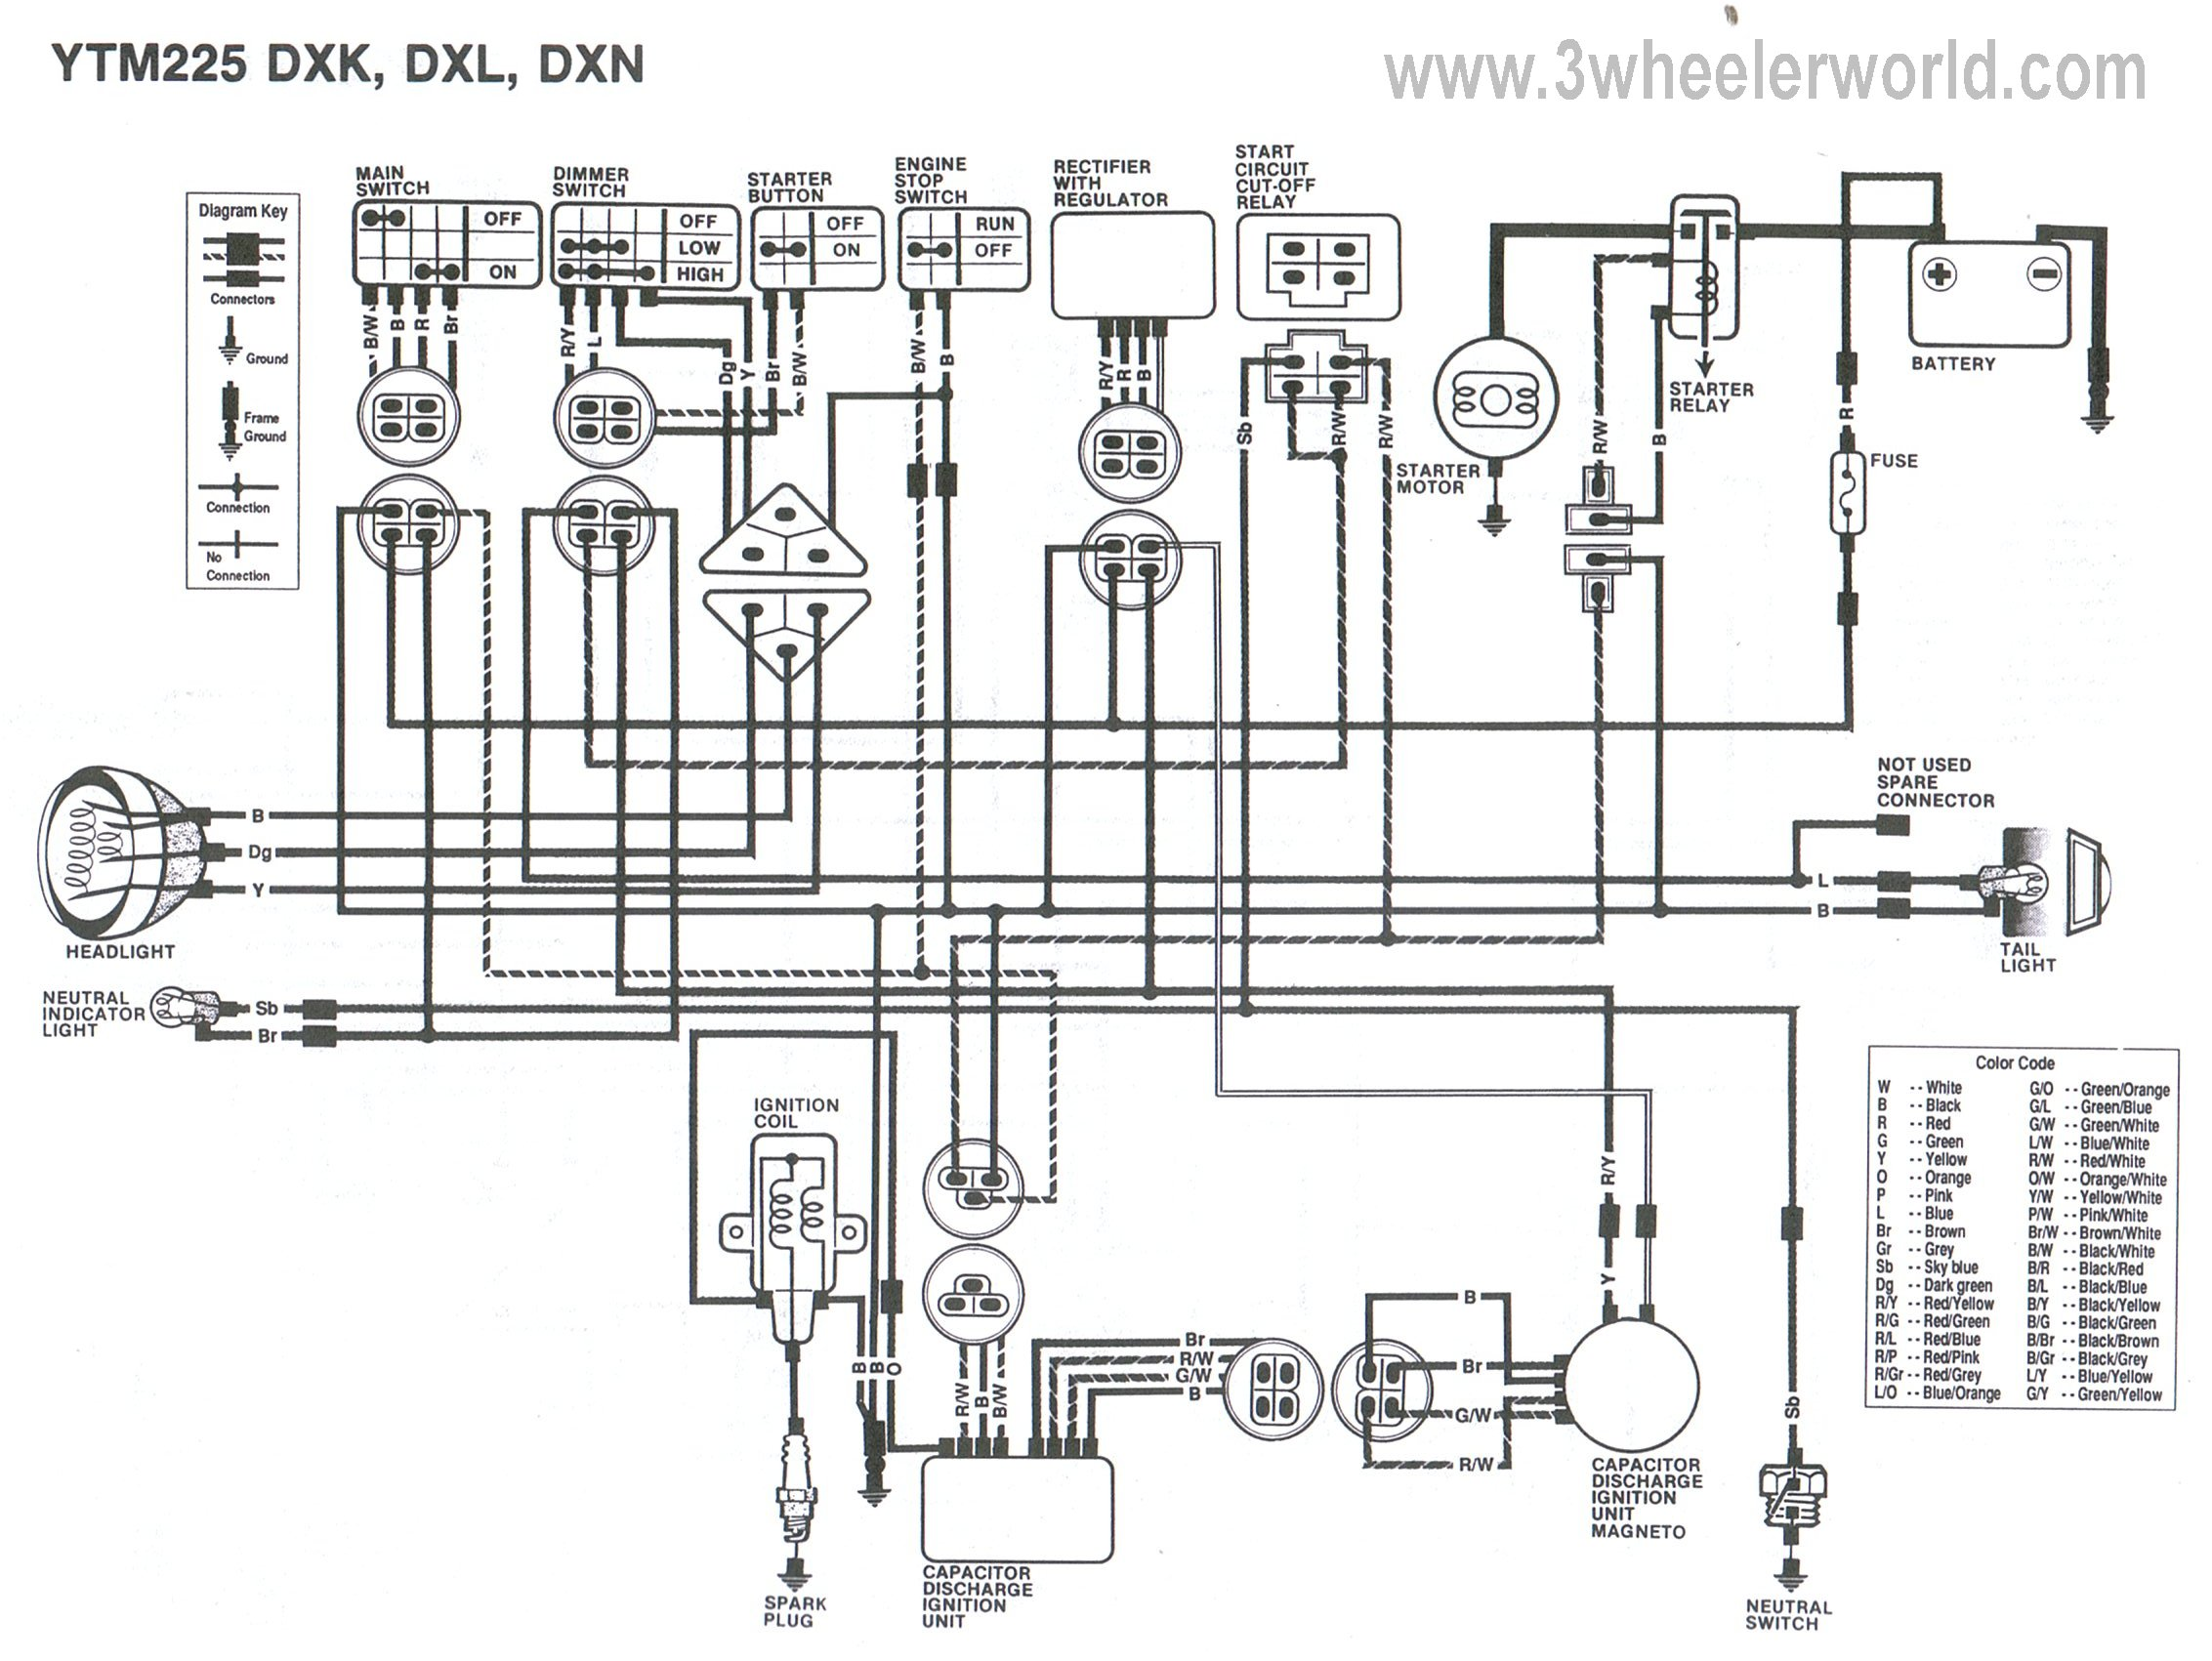 YTM225DXKDXLDXN 3 wheeler world tech help yamaha wiring diagrams JVC G320 Wiring Harness at fashall.co